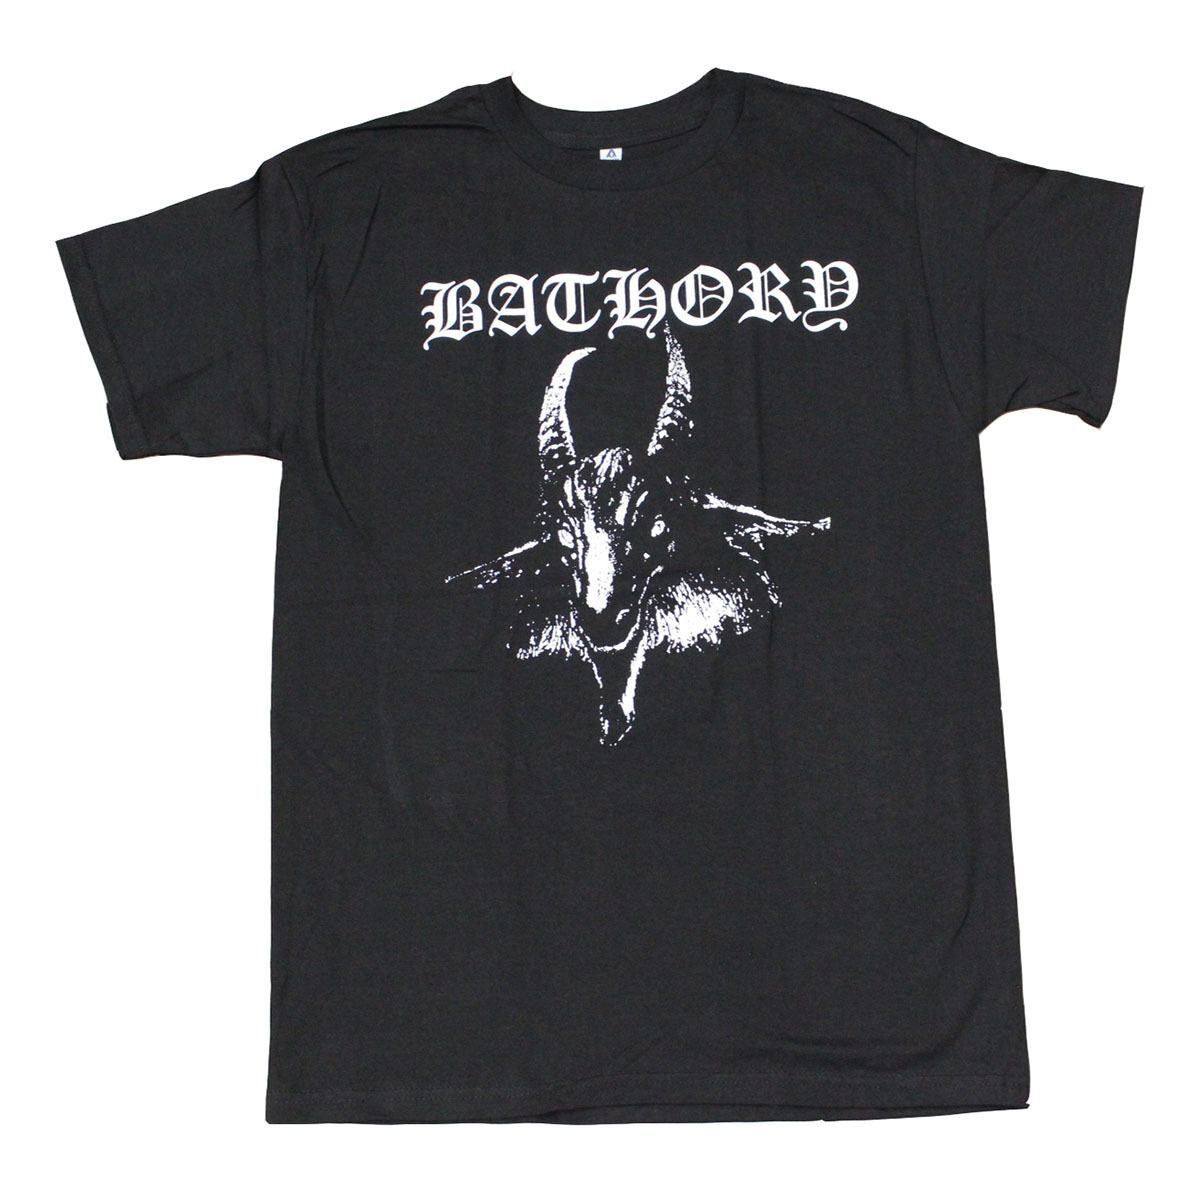 Bathory Goat Black Metal Band Men's T-Shirt Black